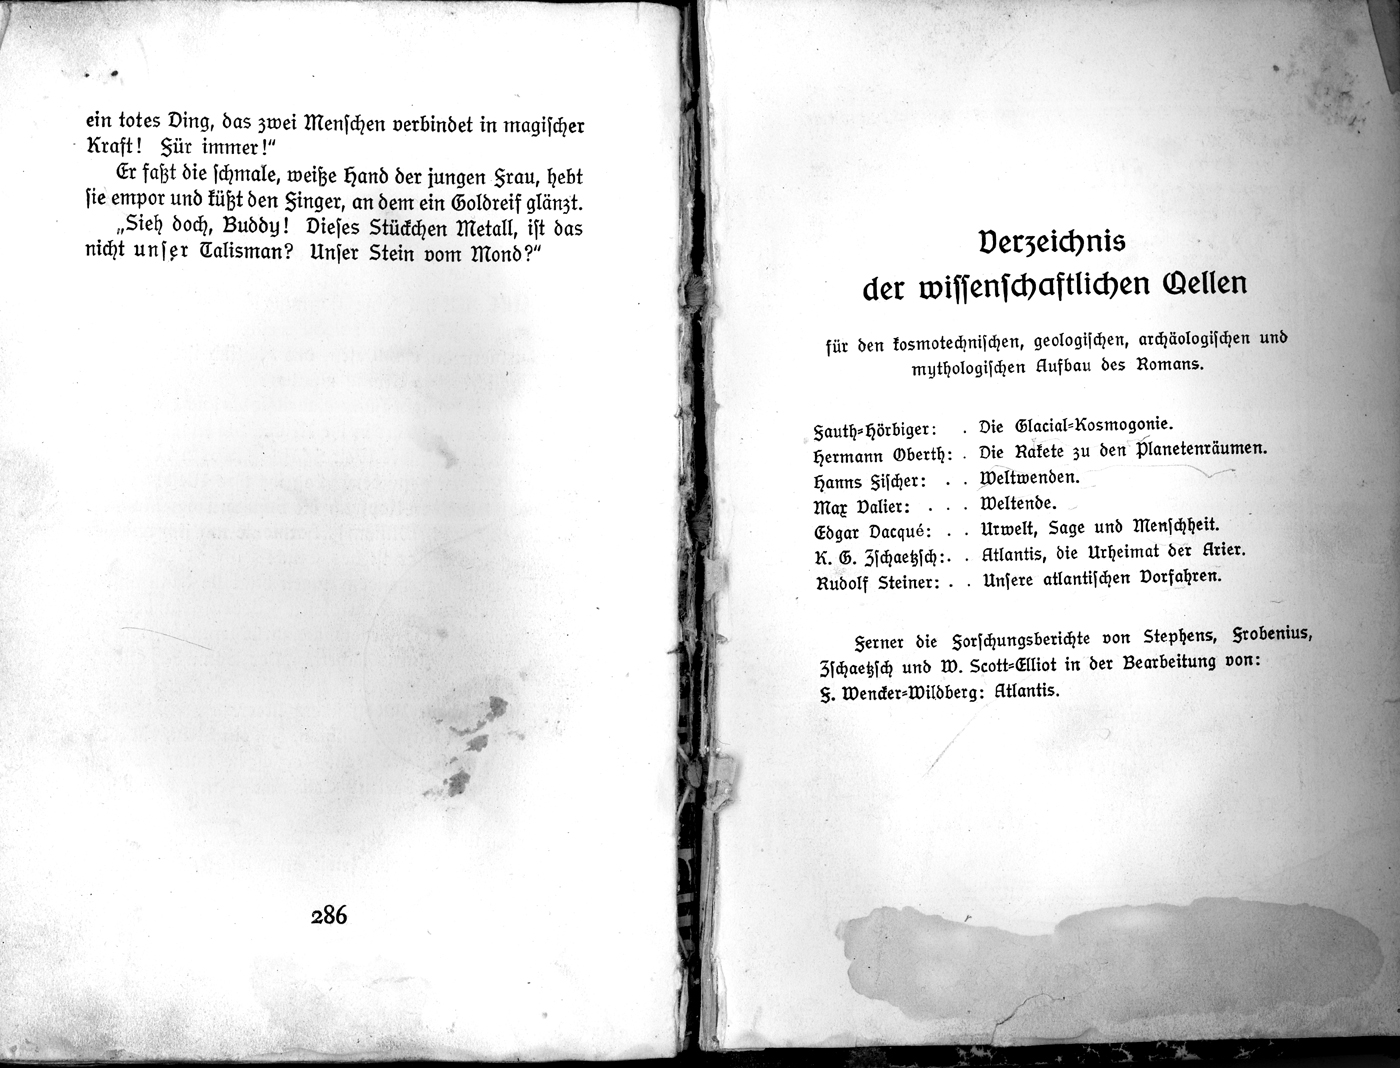 fischer thesis wwi The fischer thesis research papers are custom written and show how fischer blamed imperial germany for the causes of world war i.